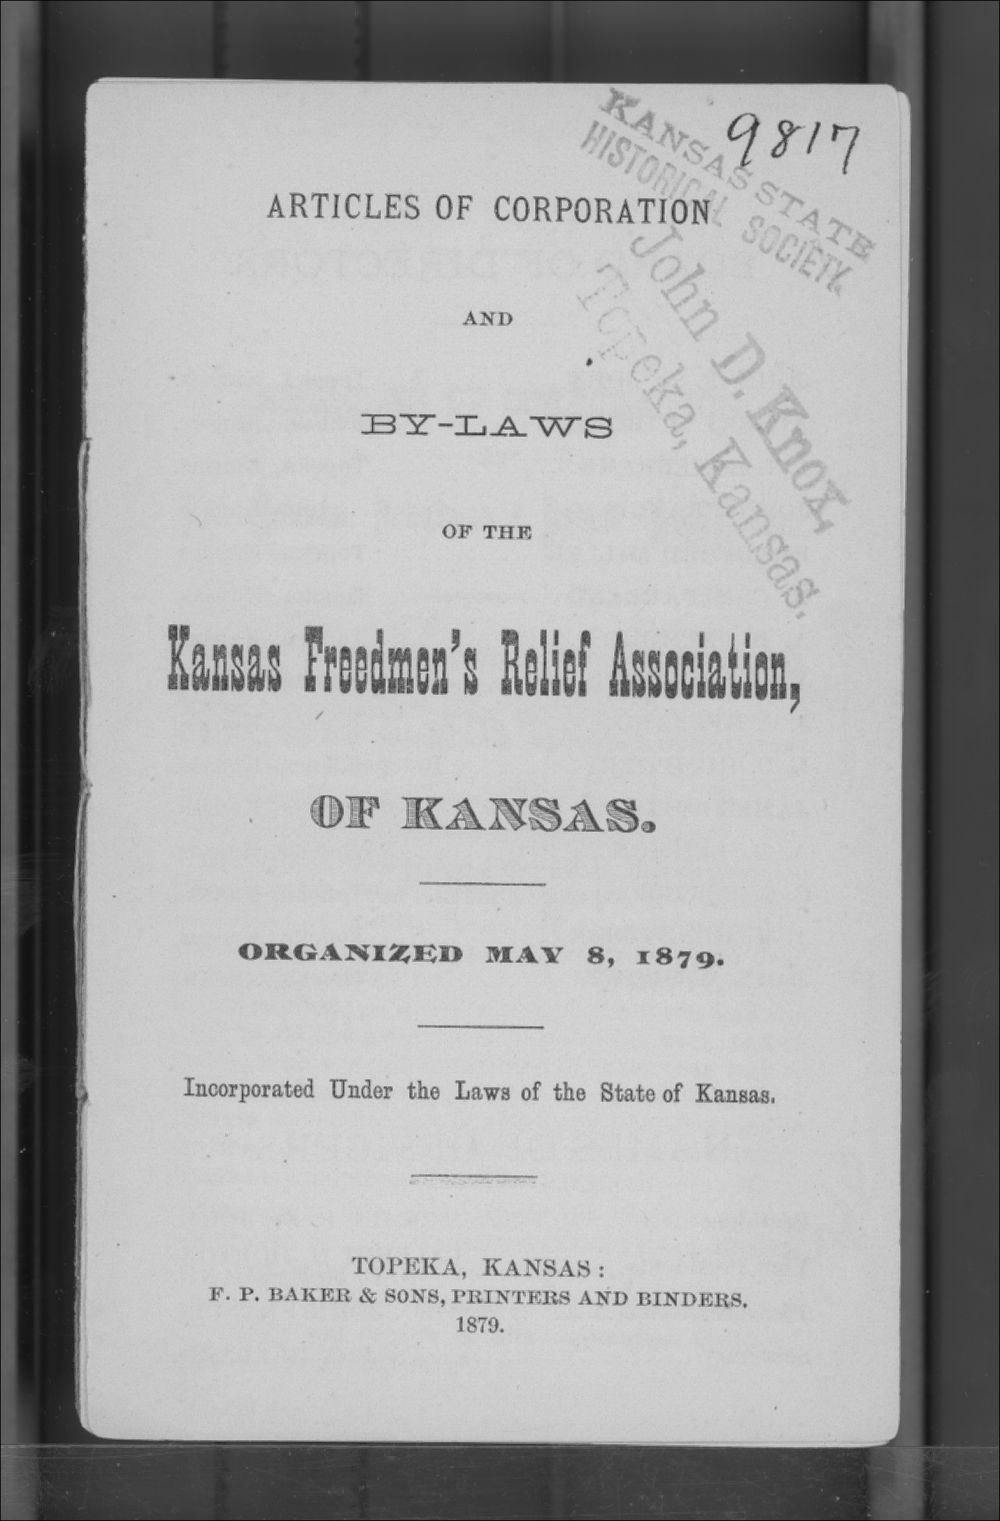 Articles of Corporation and By-Laws of the Kansas Freedmen's Relief Association - Title Page